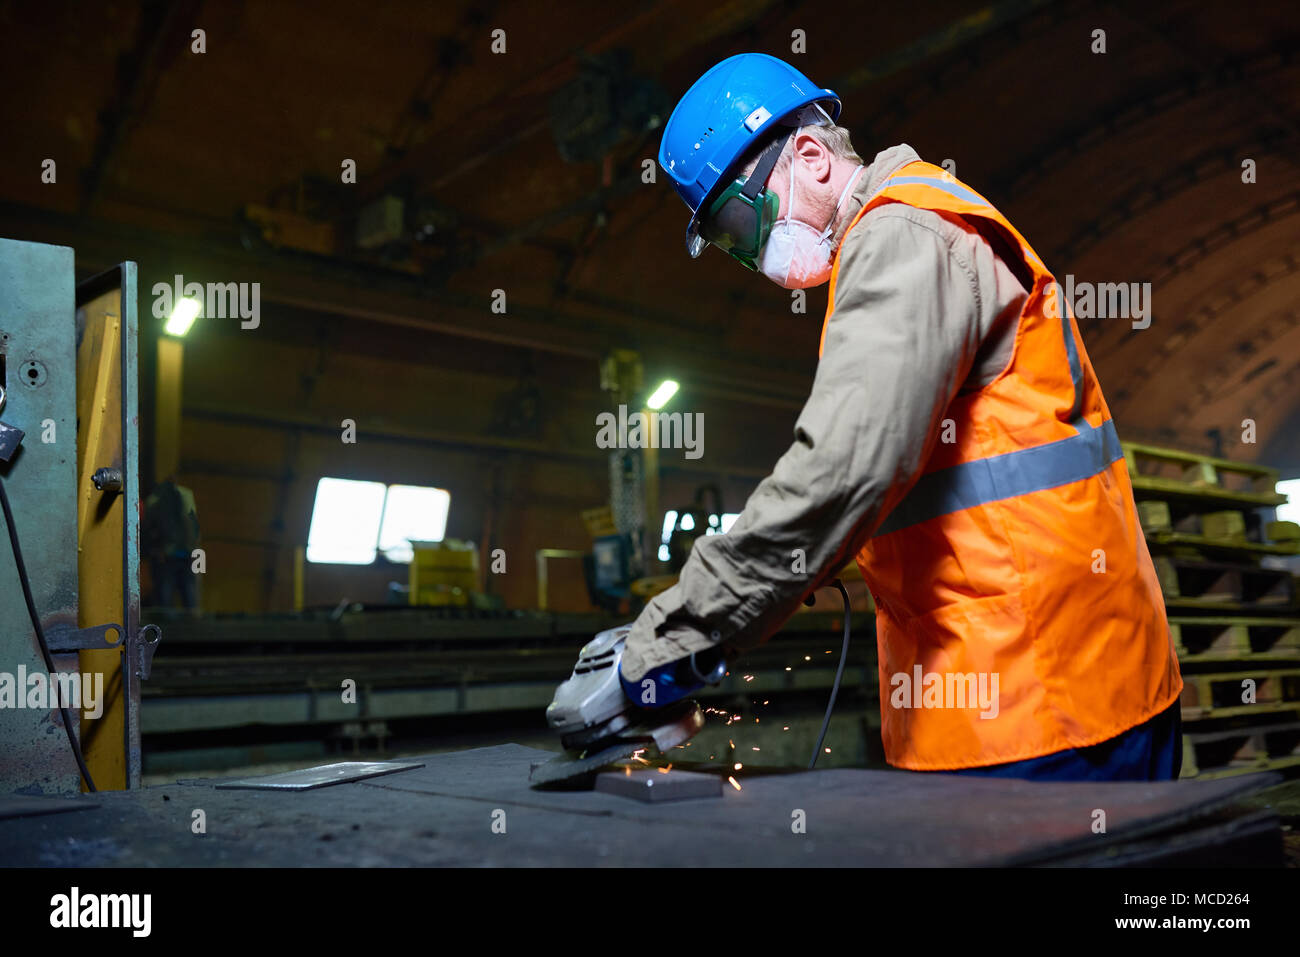 Highly Professional Worker Using Angle Grinder - Stock Image